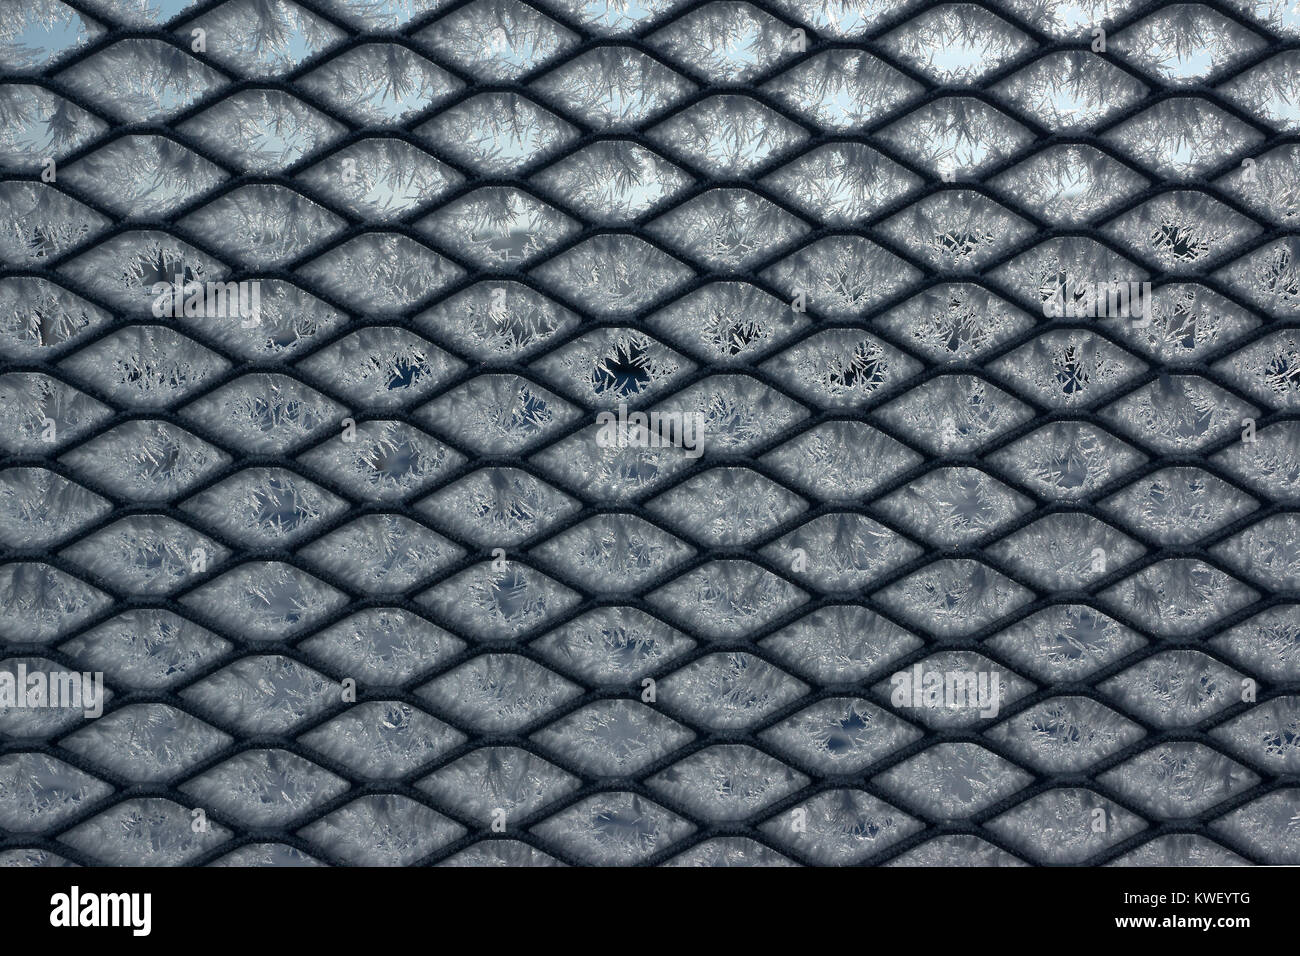 Steel Wire Mesh Stock Photos & Steel Wire Mesh Stock Images - Alamy